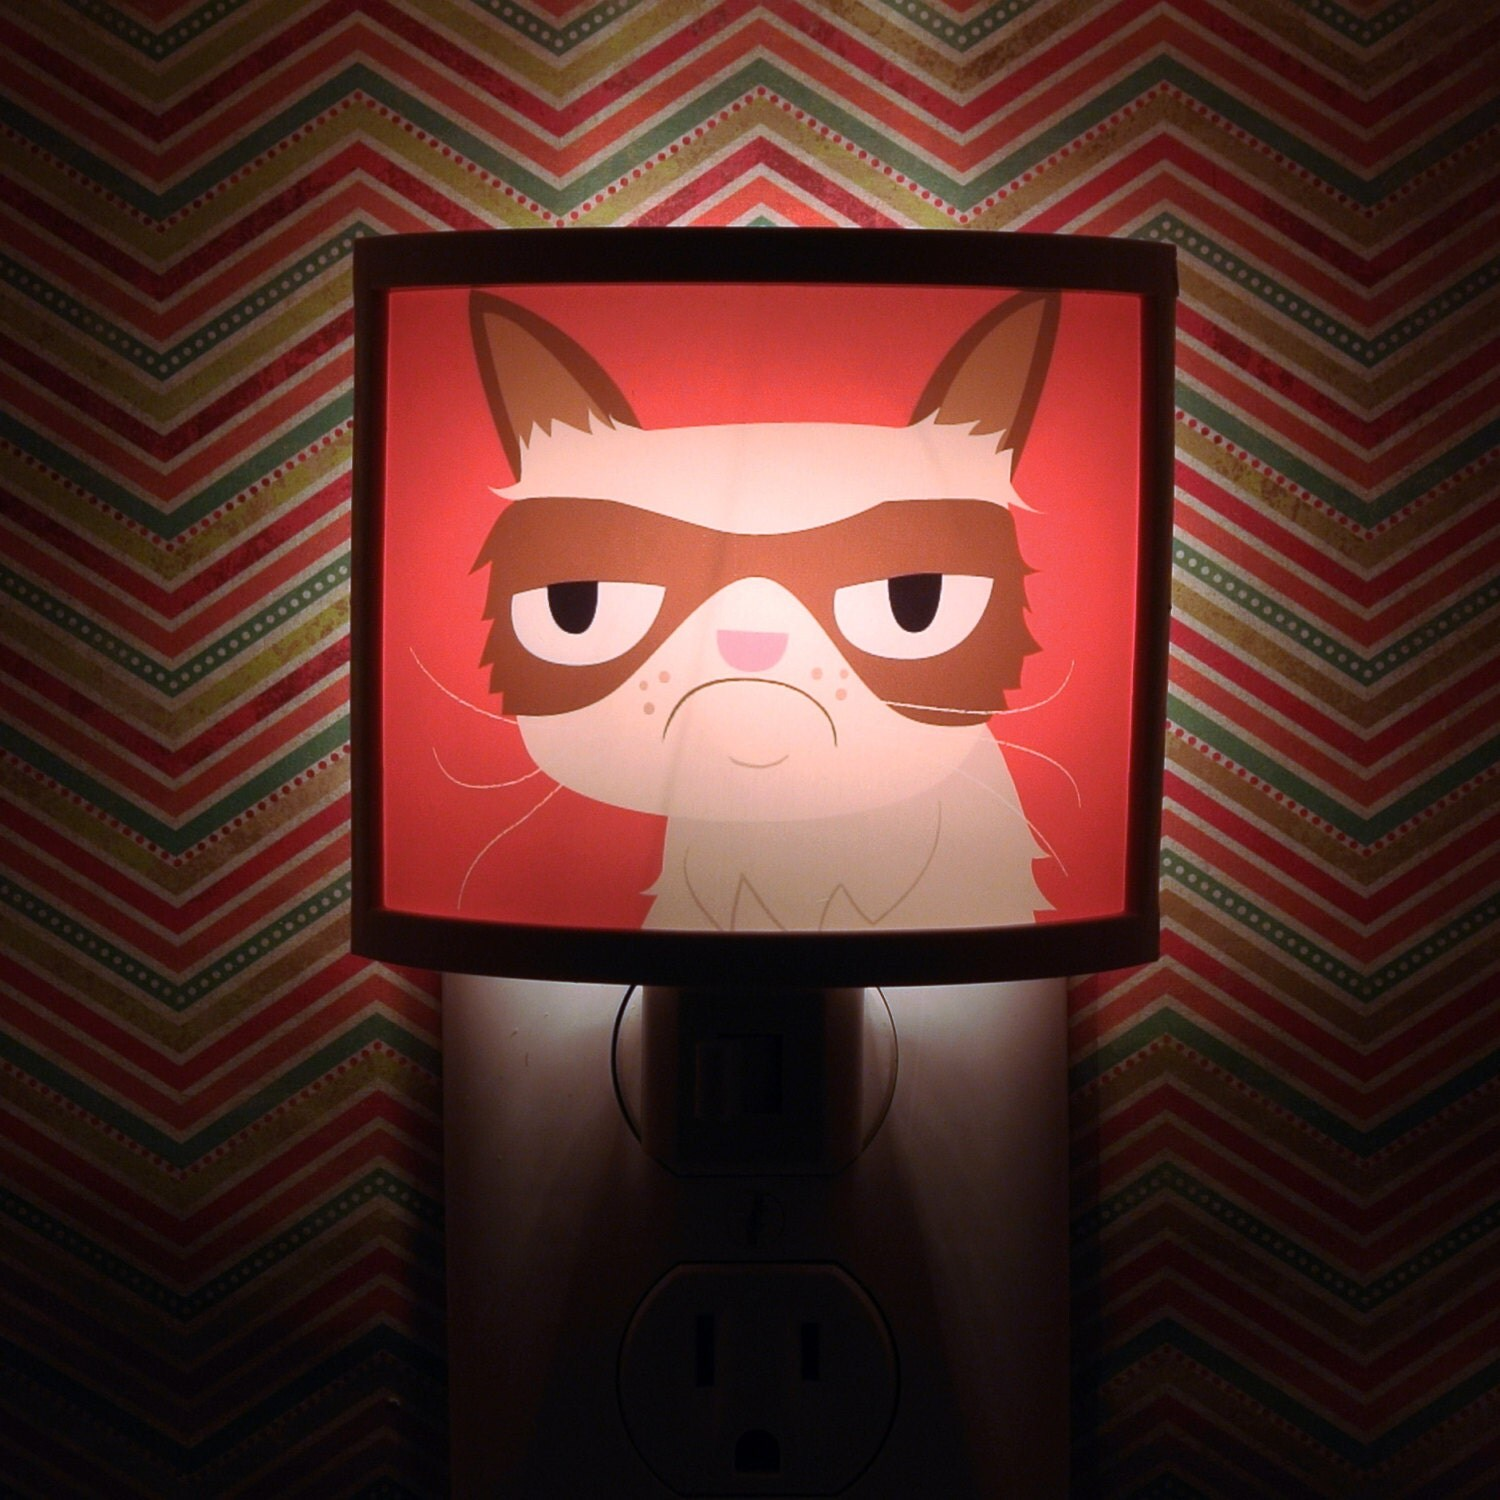 Grumpy Cat Night Light negative adorable art by Kathleen Habbley Cute Nursery Bathroom hallway Bedroom GET IT nightlight Nite Lite - CommonRebels